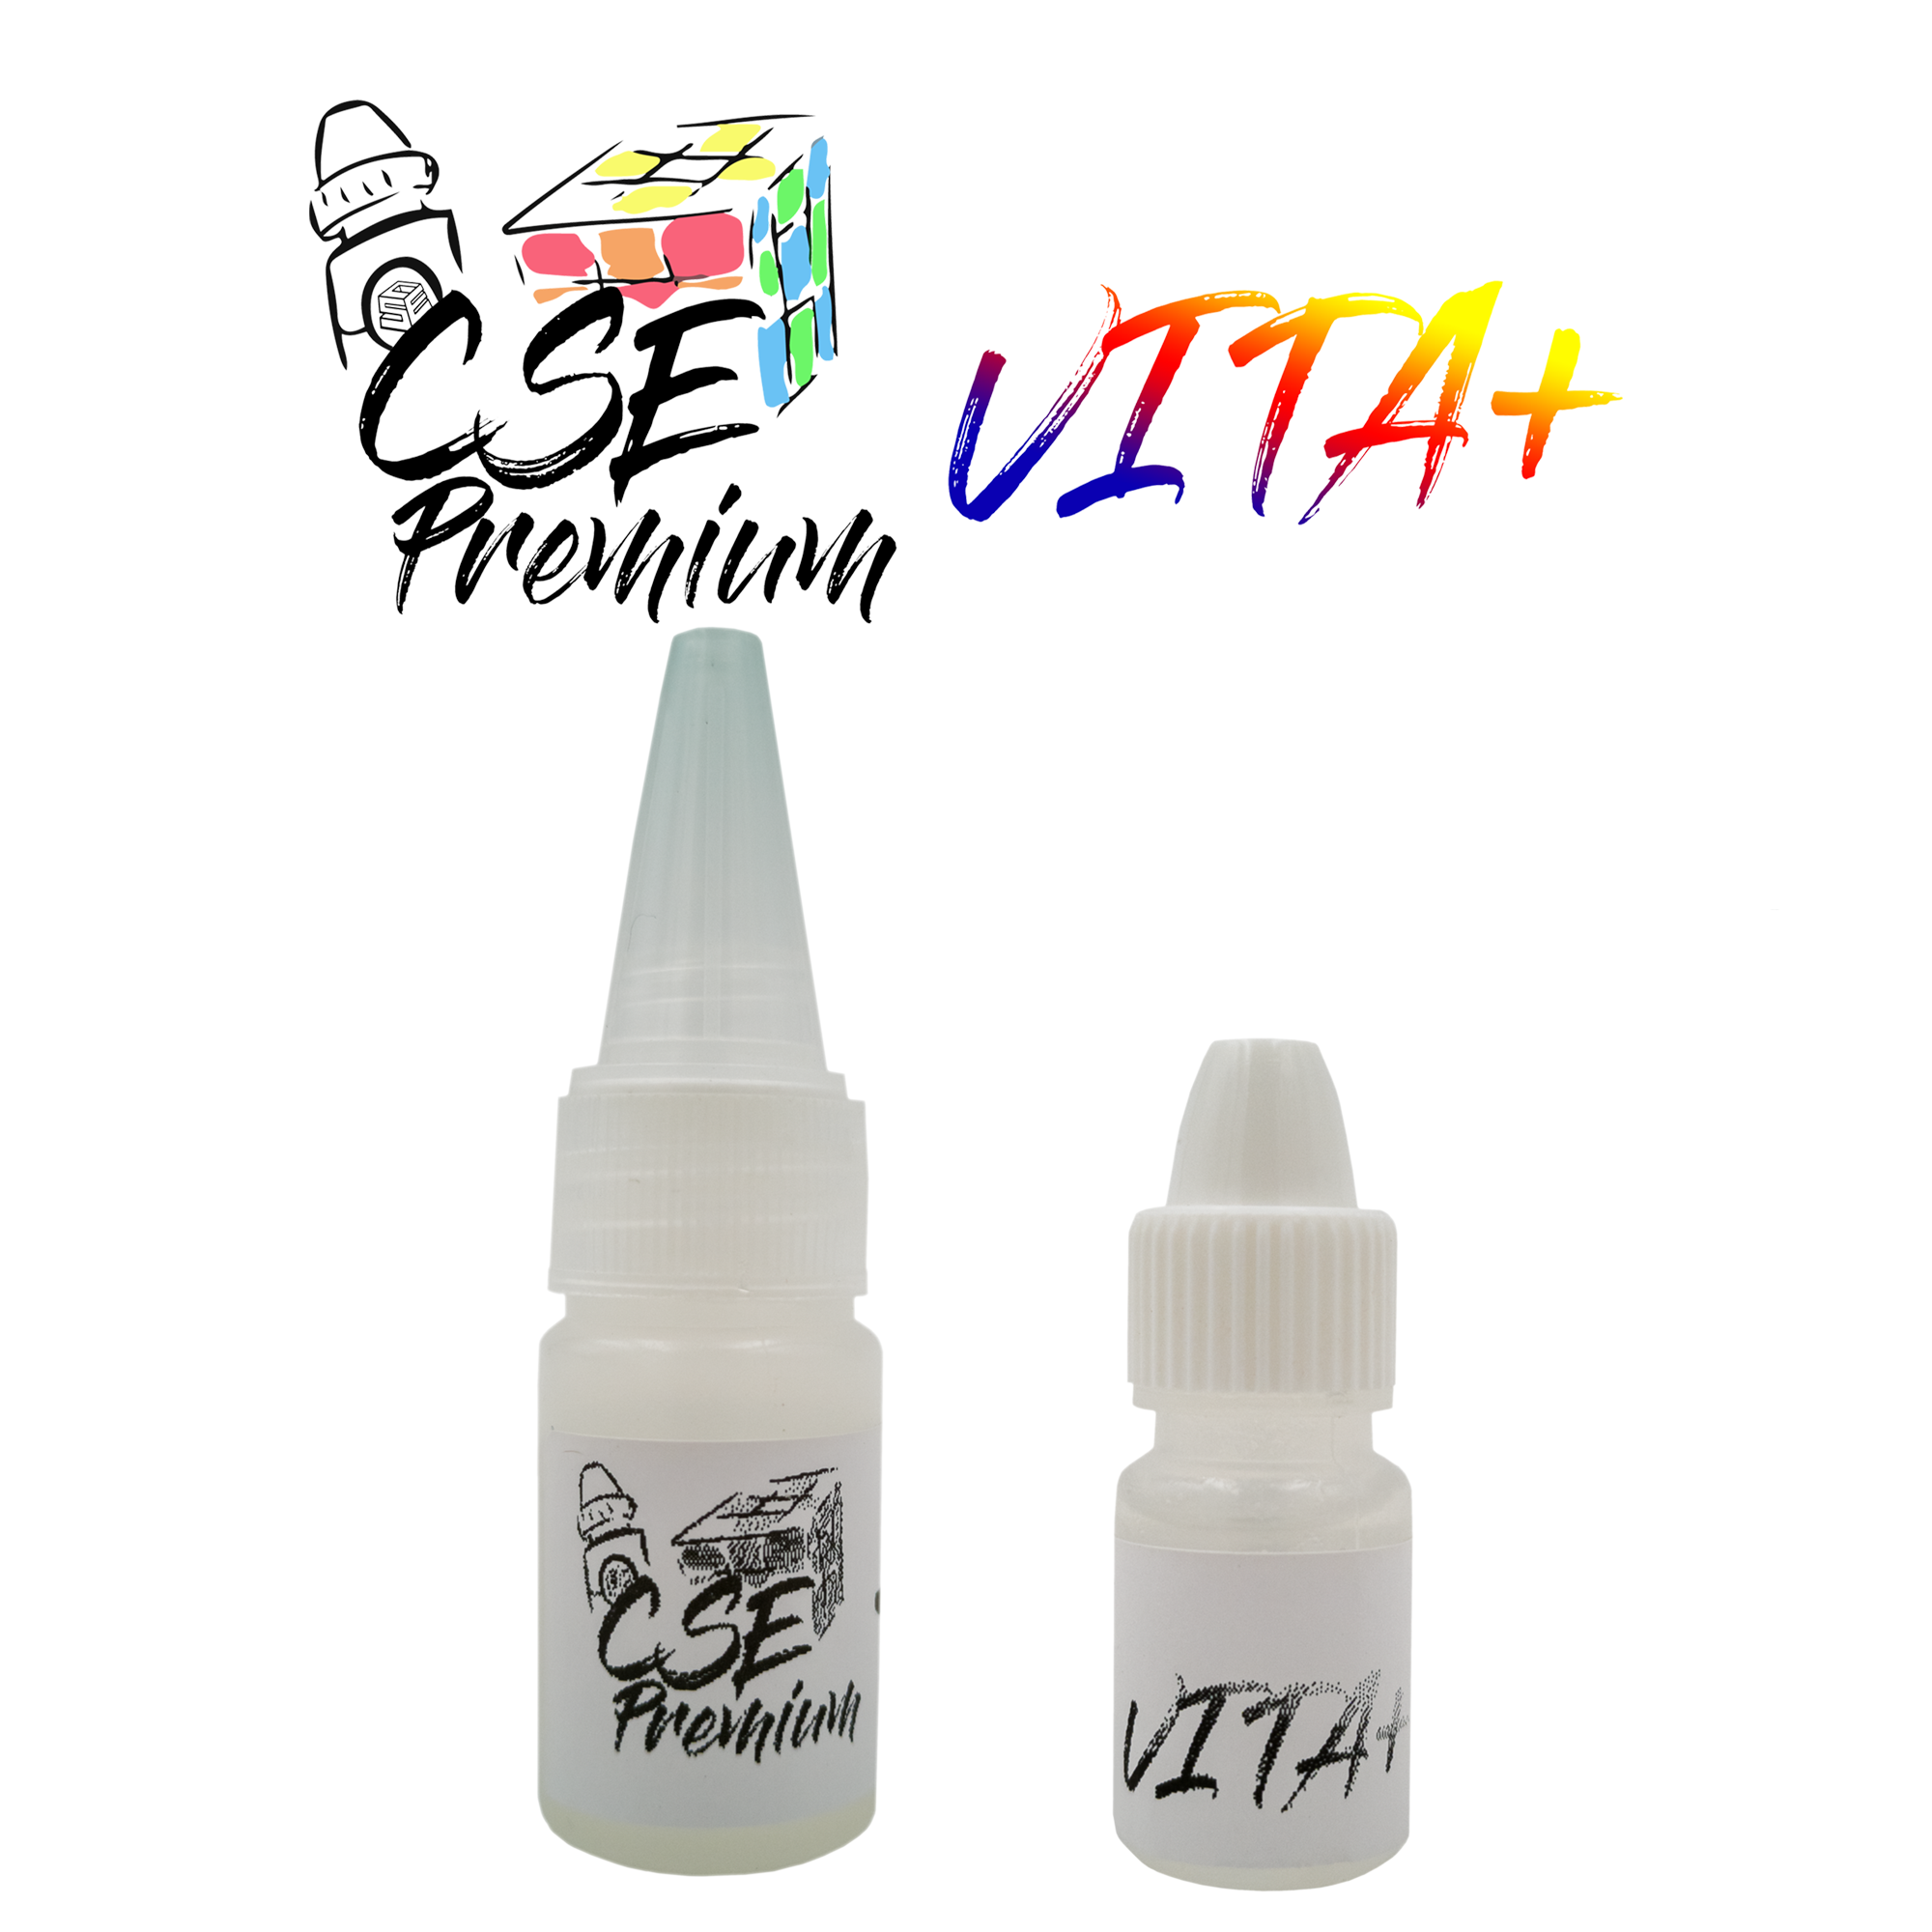 cuberspace premium vita+ 10cc and 5cc bottles